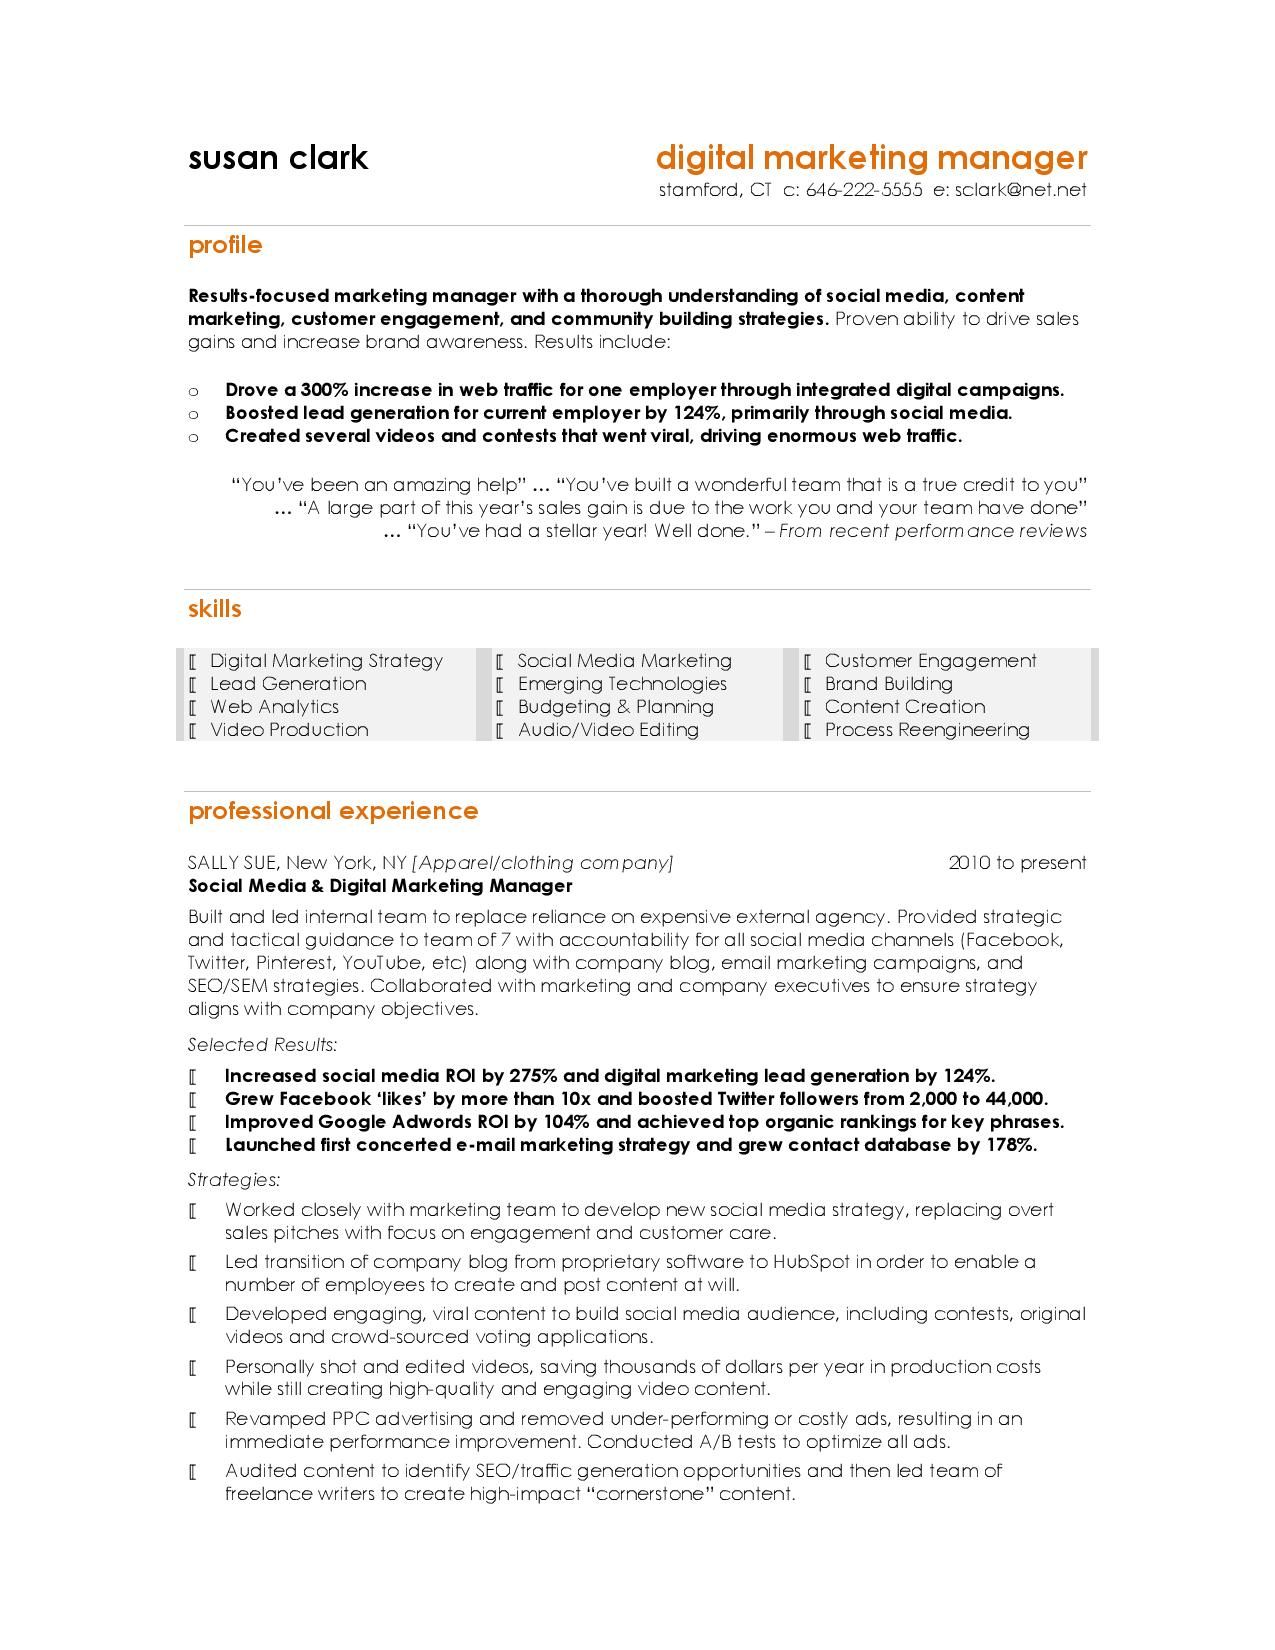 resume examples digital marketing manager template for awards and honors section perfect Resume Resume Template For Digital Marketing